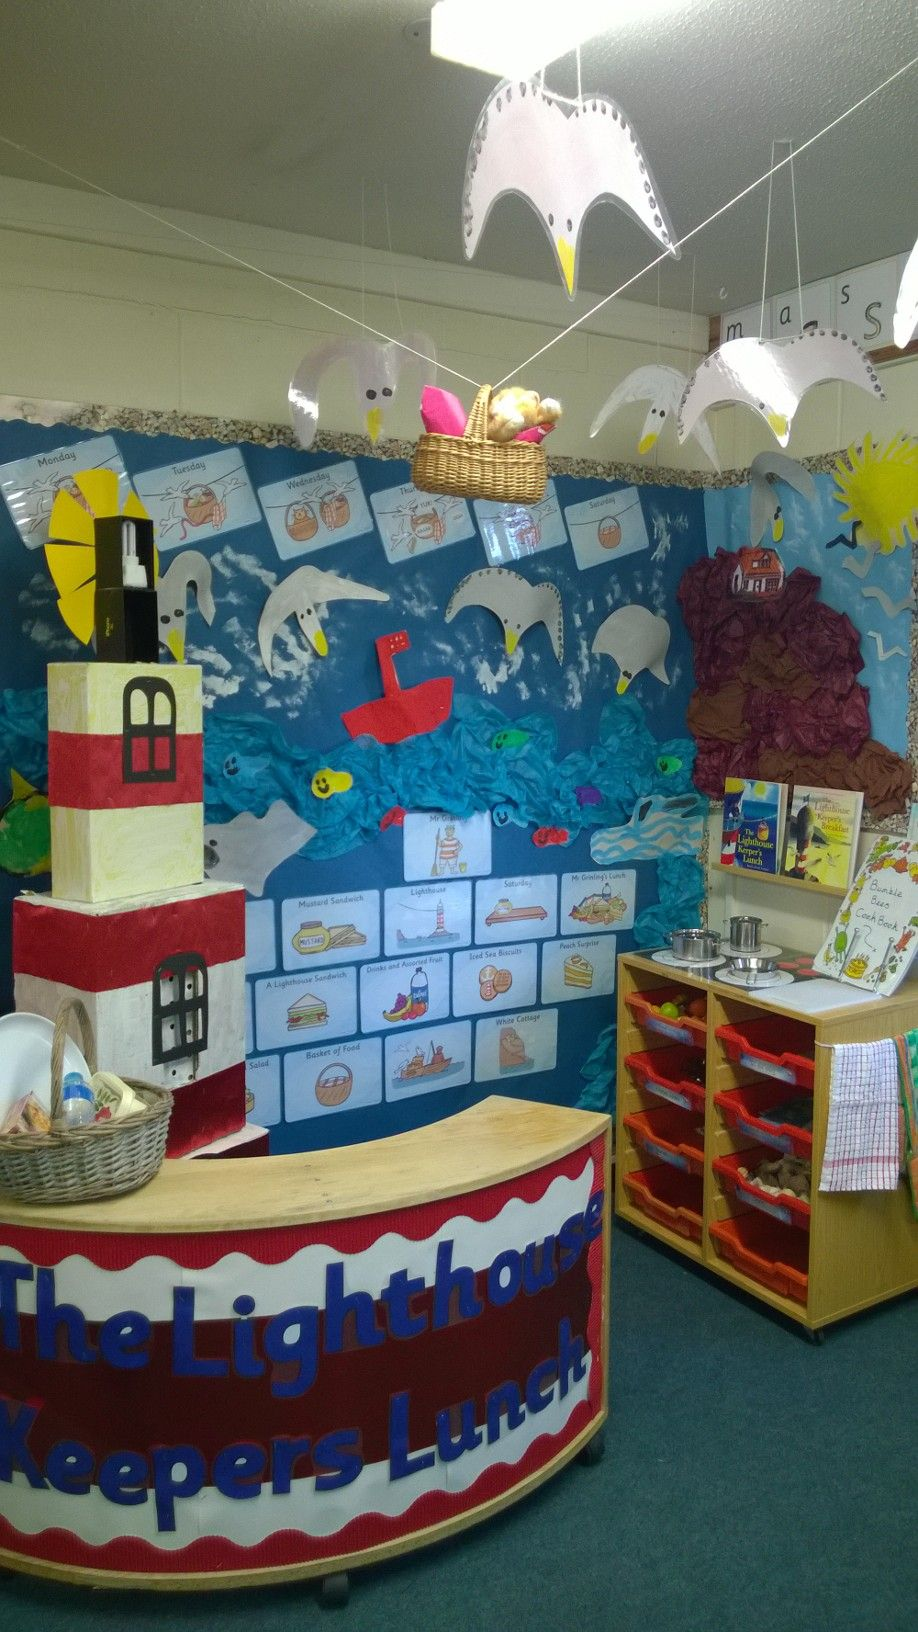 Role play area for The Lighthouse Keeper's Lunch for a year 1 class. Lighthouse, seagulls, boat, fish and sea creatures made and painted by the children.